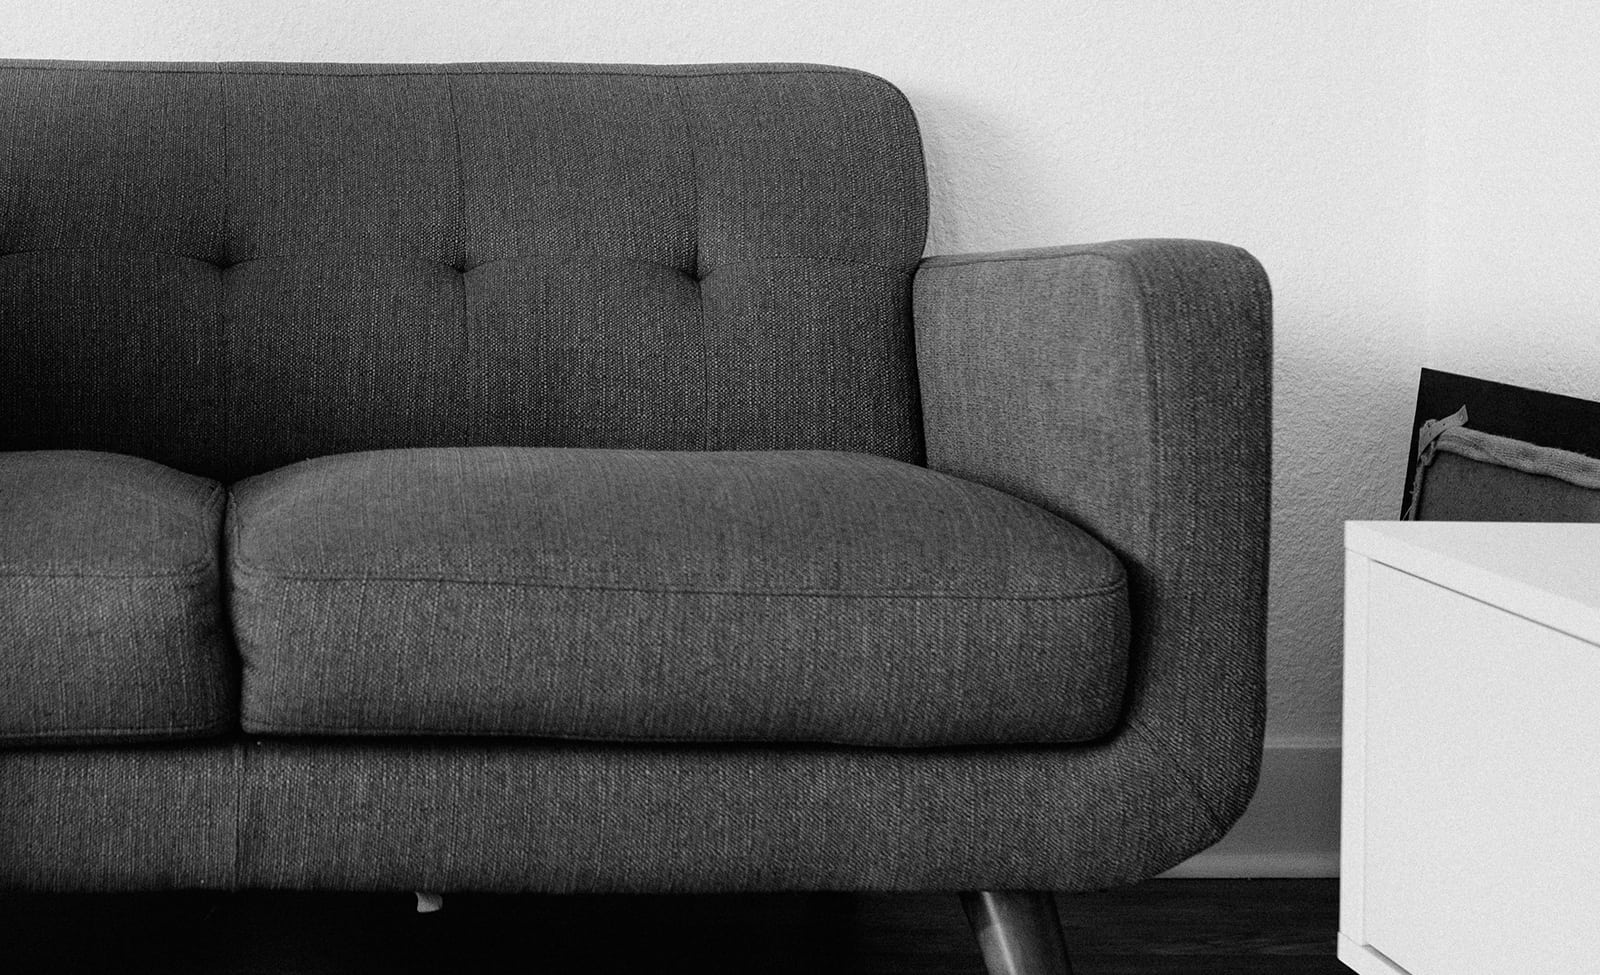 sam-story-couch-part-2